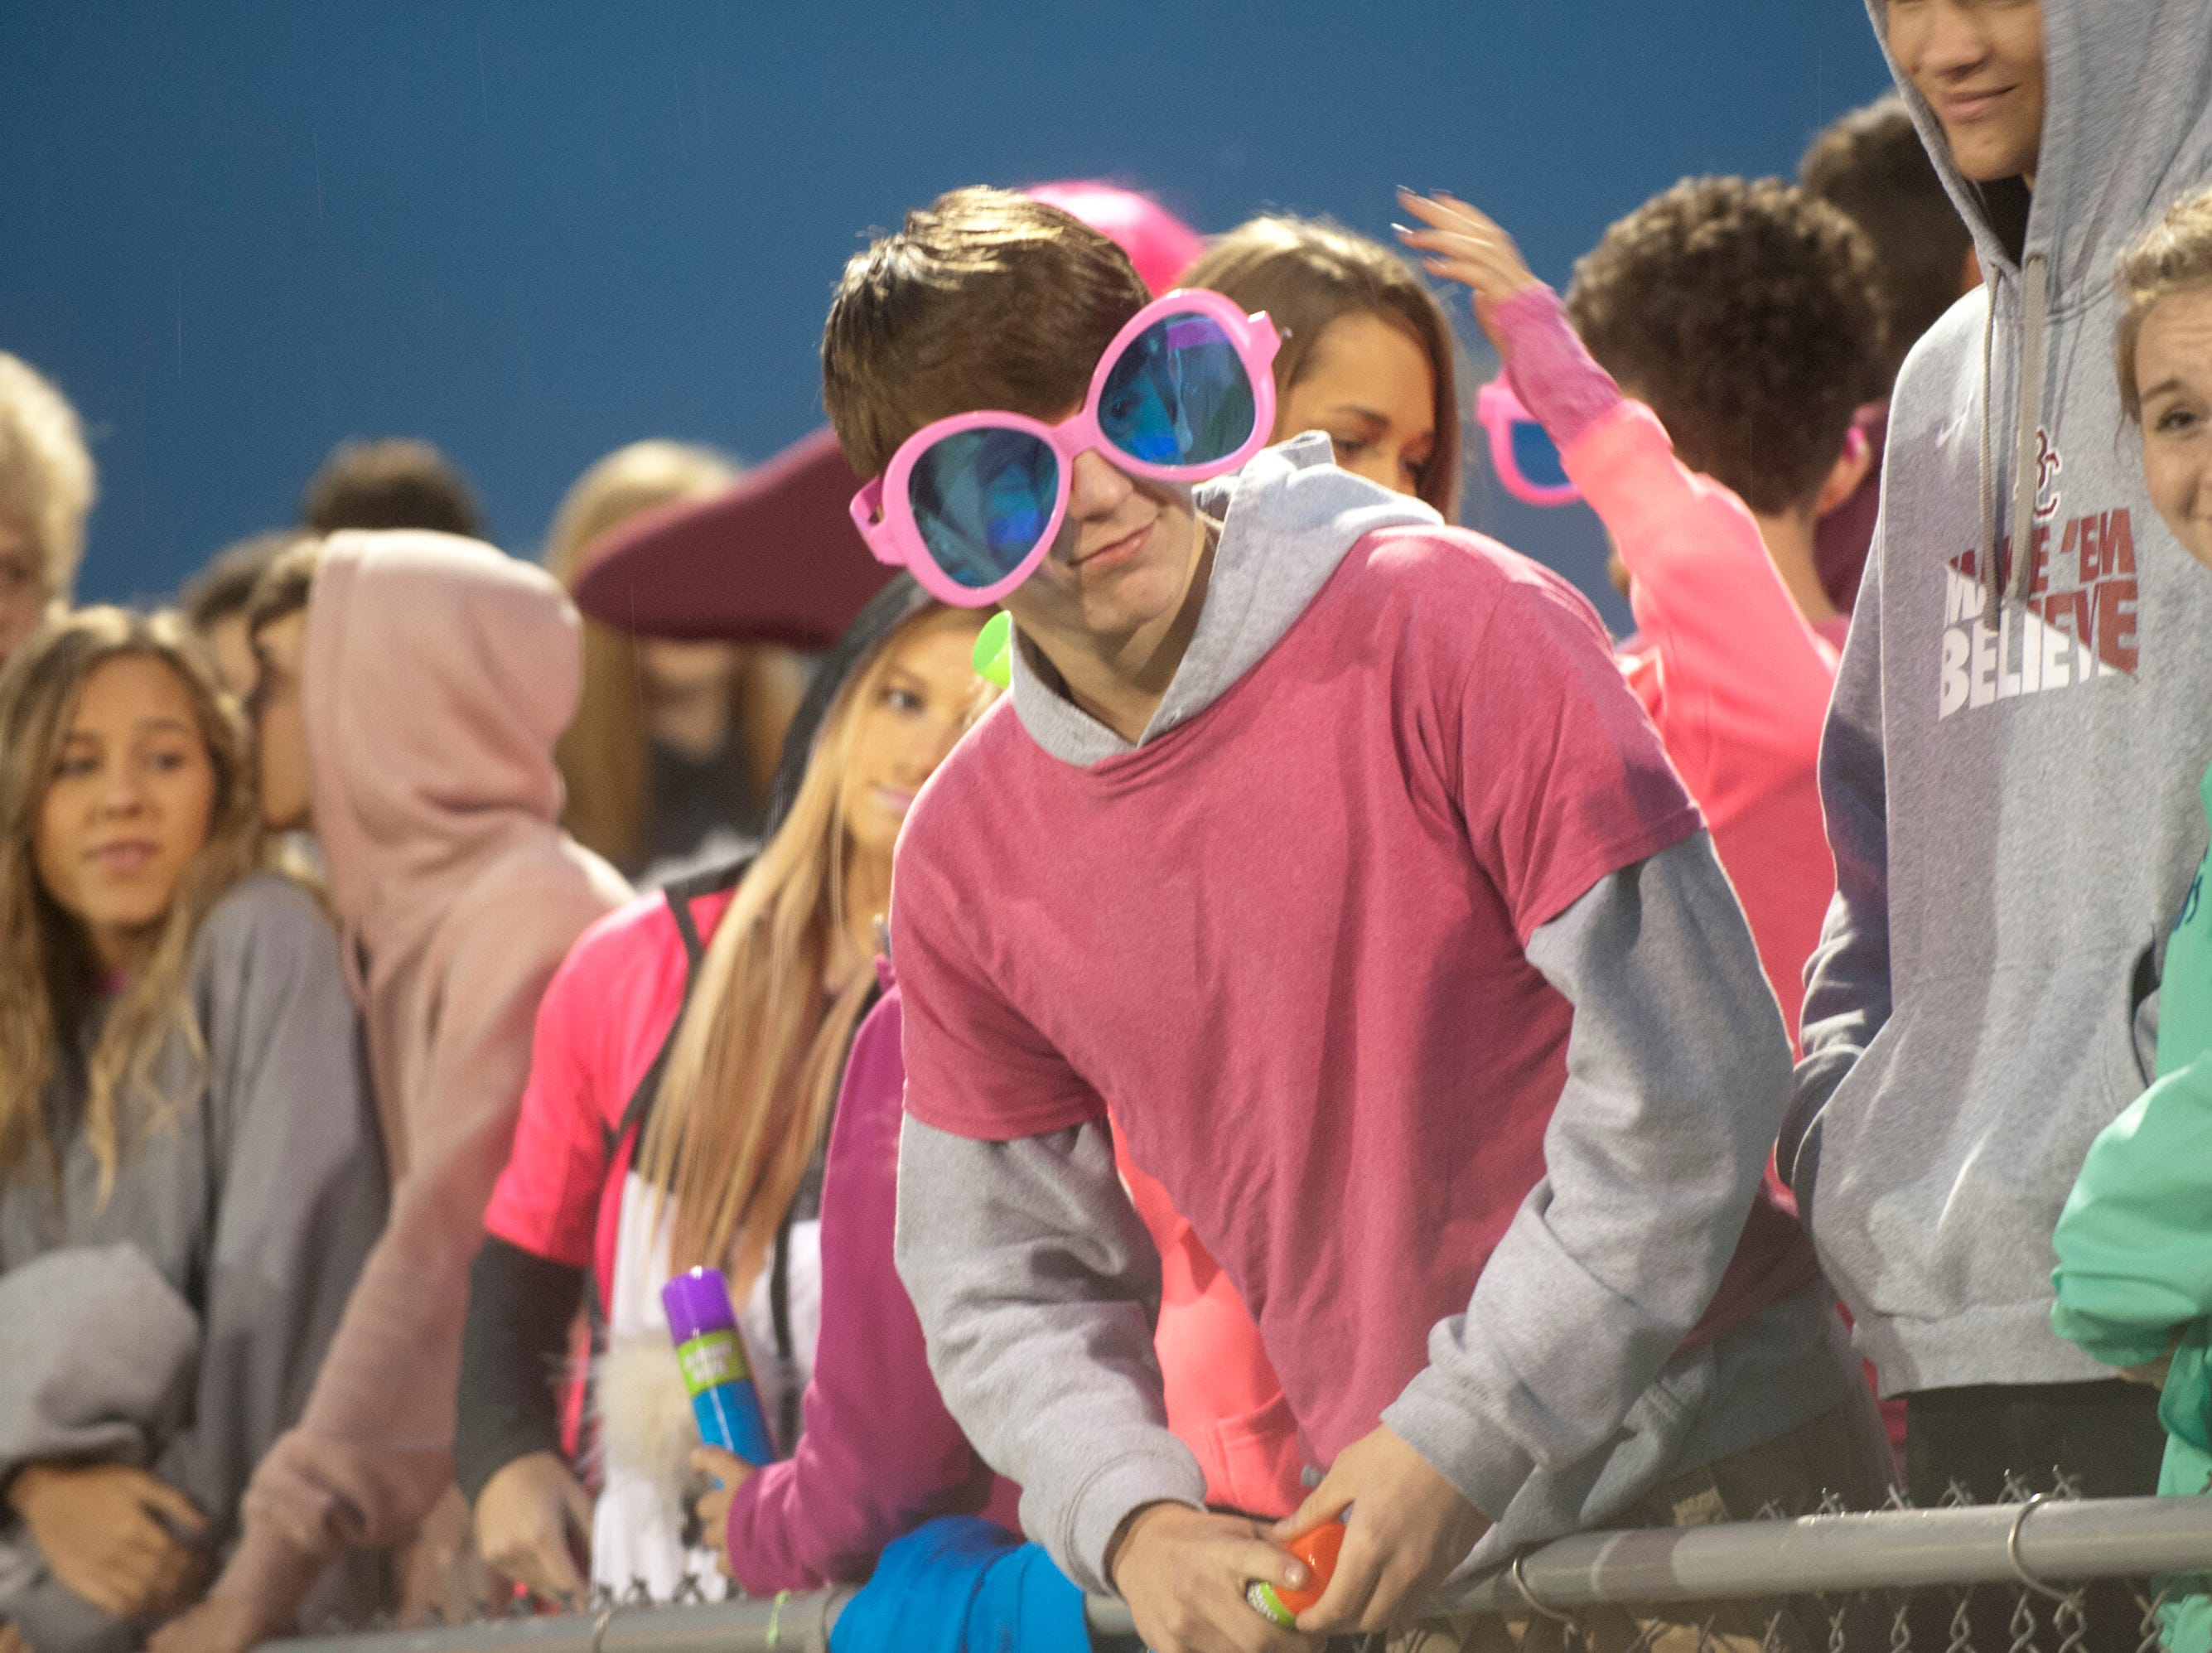 A Bullitt Central fan with oversize glasses checks out the action from the stands. Oct. 12, 2018